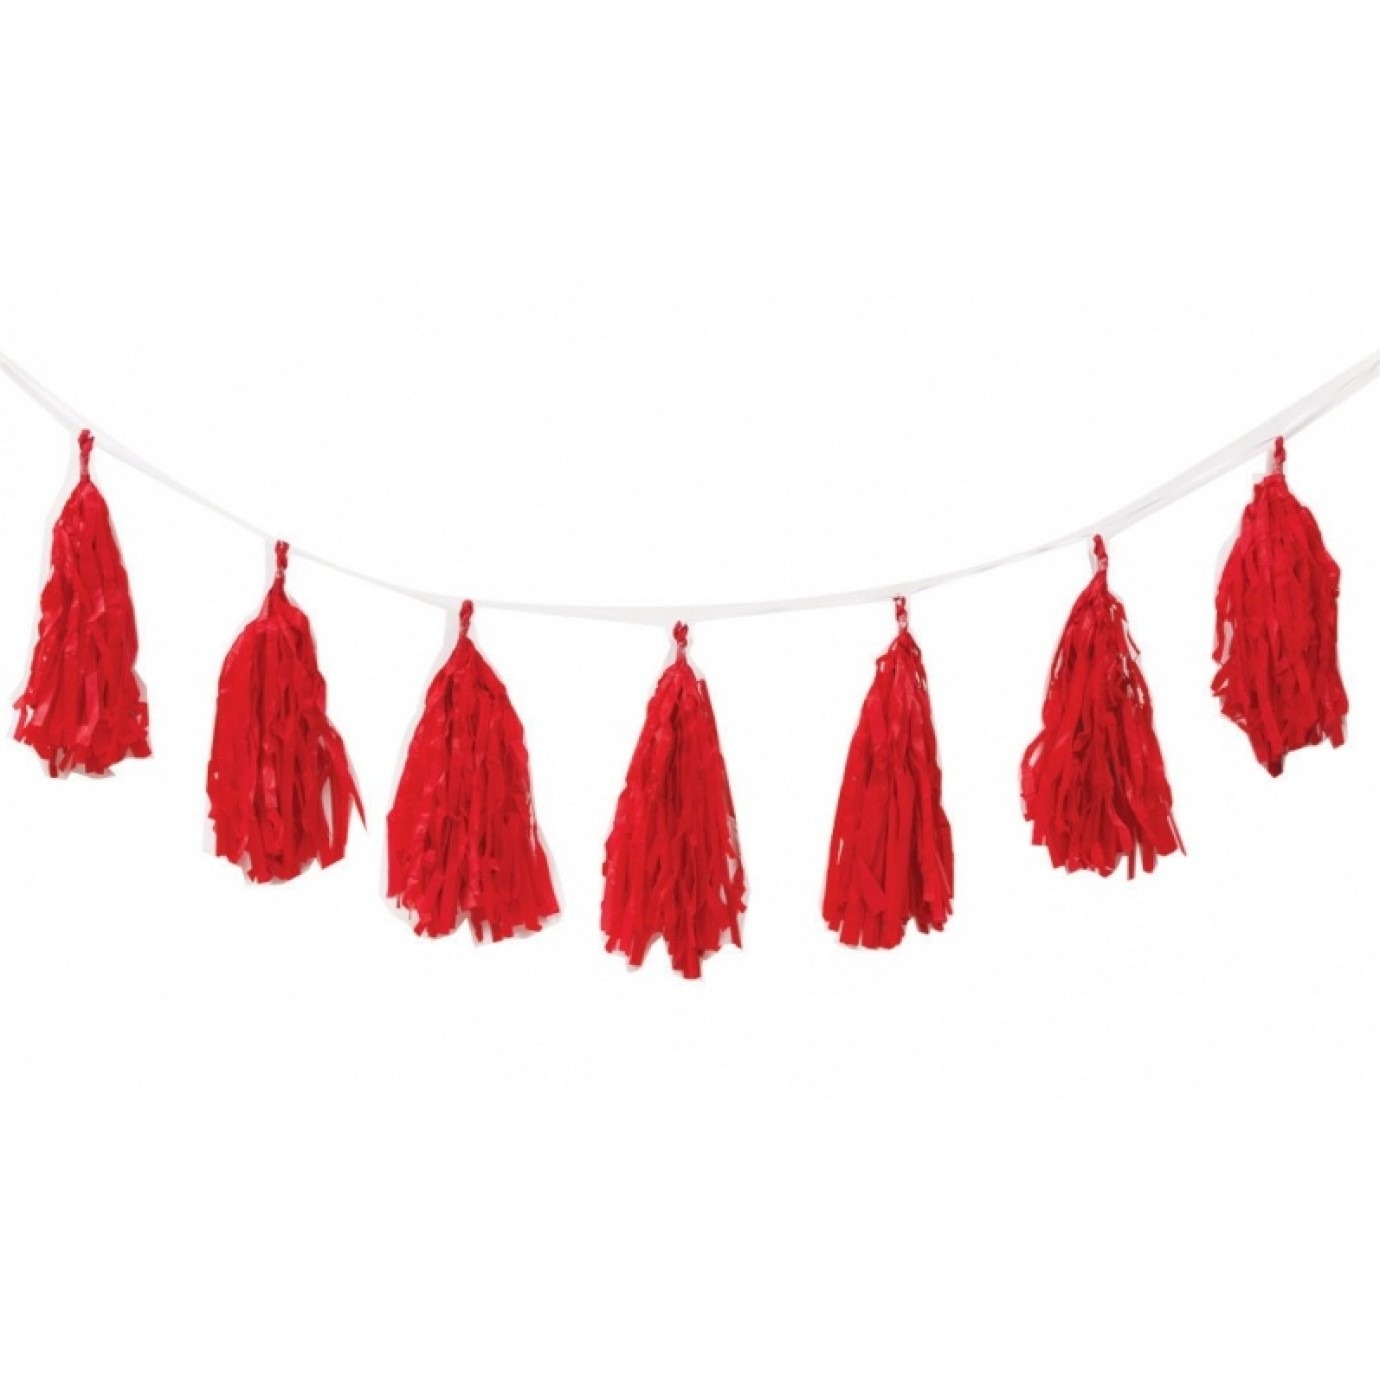 Garland Tassel Red Garlands Hanging Decorations Decorating Party Supplies The Party People Shop